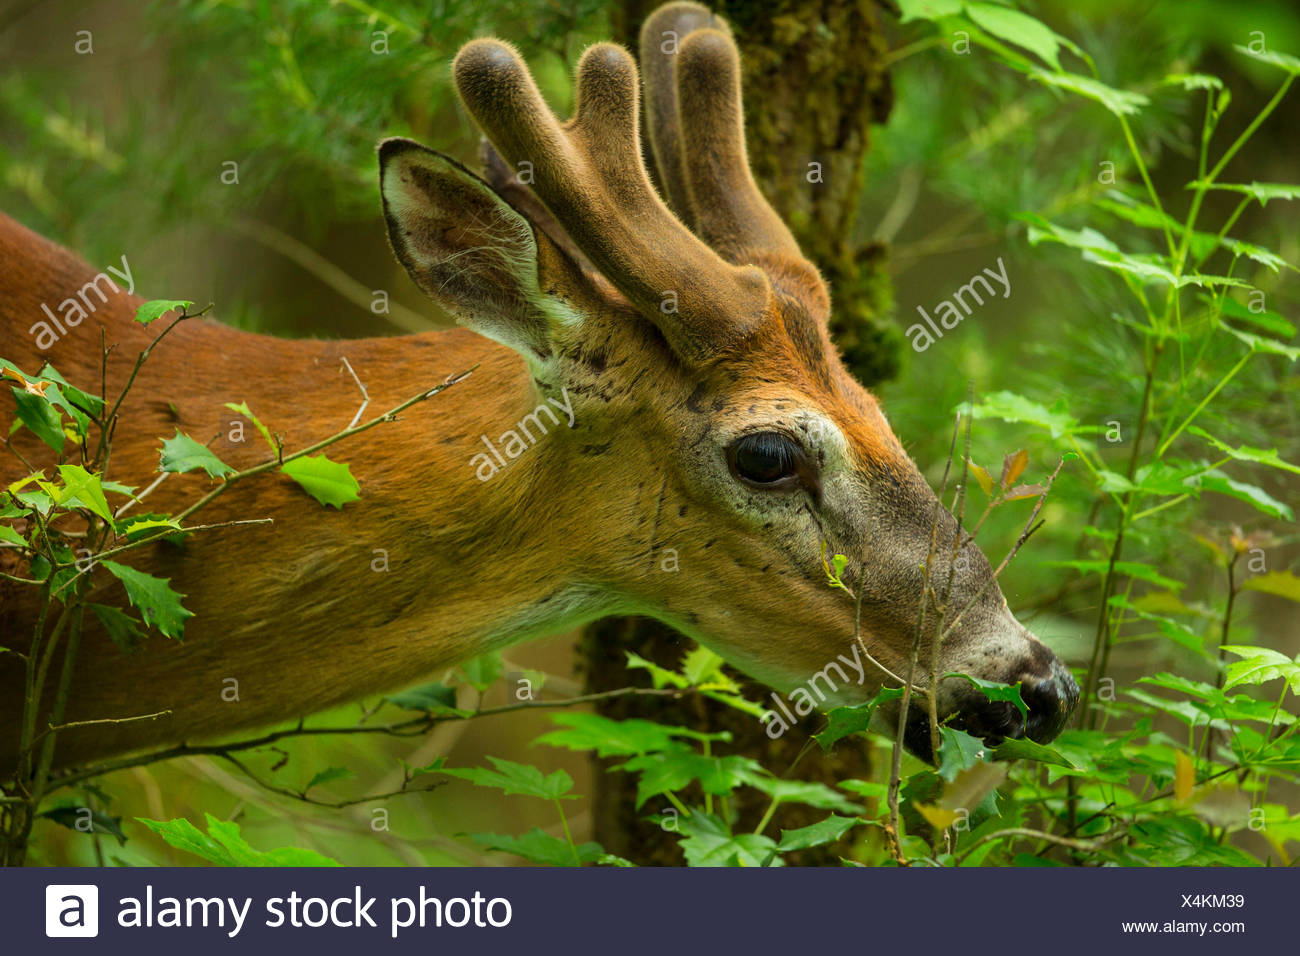 White-tailed deer (Odocoileus virginianus), browsing, portrait with antler in neoformation of the velvet, USA, Tennessee, Great Smoky Mountains National Park - Stock Image